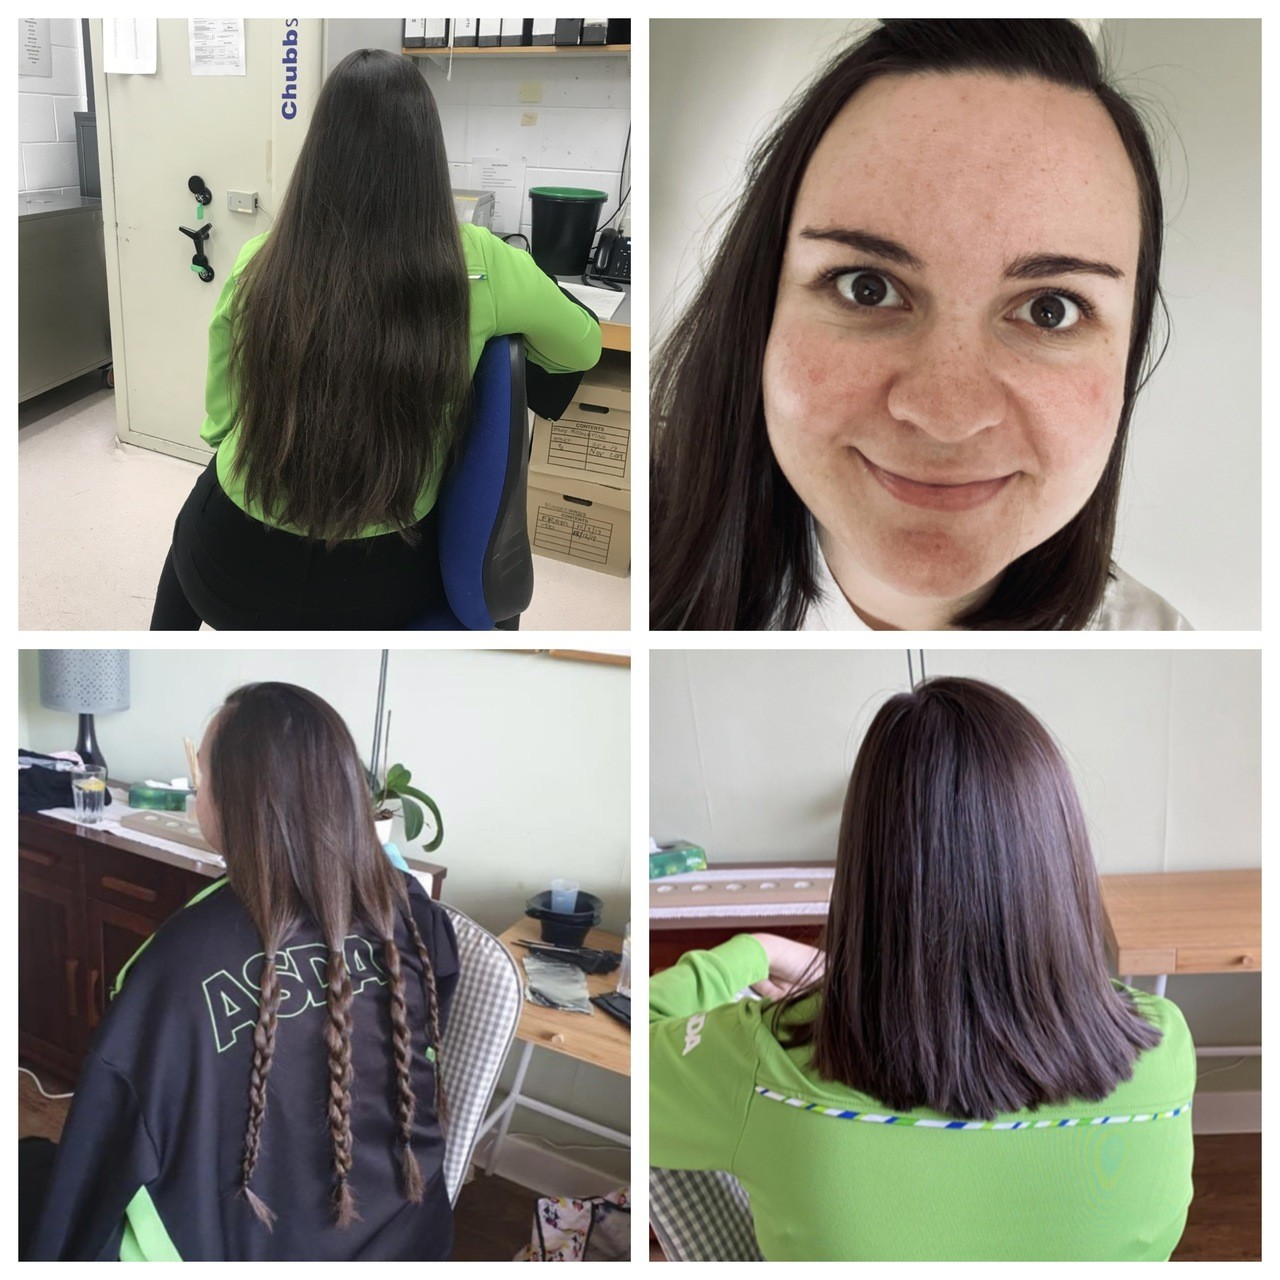 Asda Ayr colleague Hannah has donated locks to Little Princess Trust | Asda Ayr